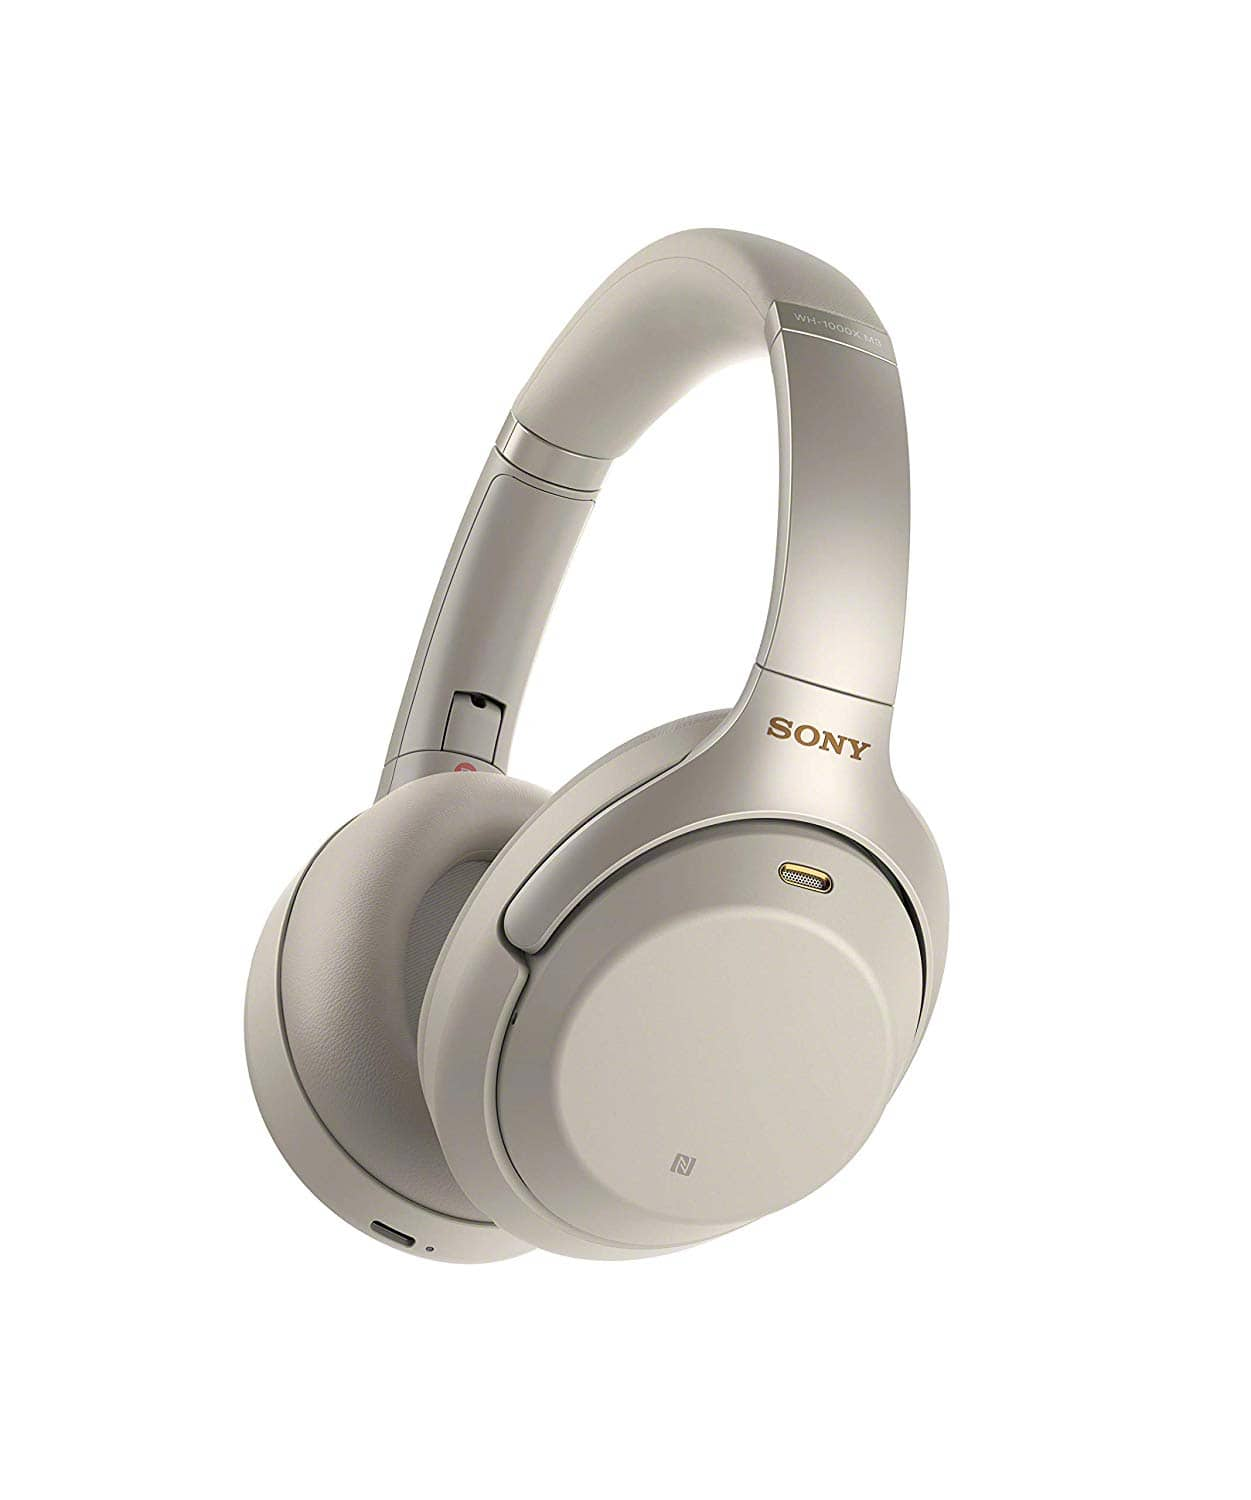 Amazon Renewed -Sony WH1000XM3 Bluetooth Wireless Noise Canceling Headphones Silver & Black -$199.99